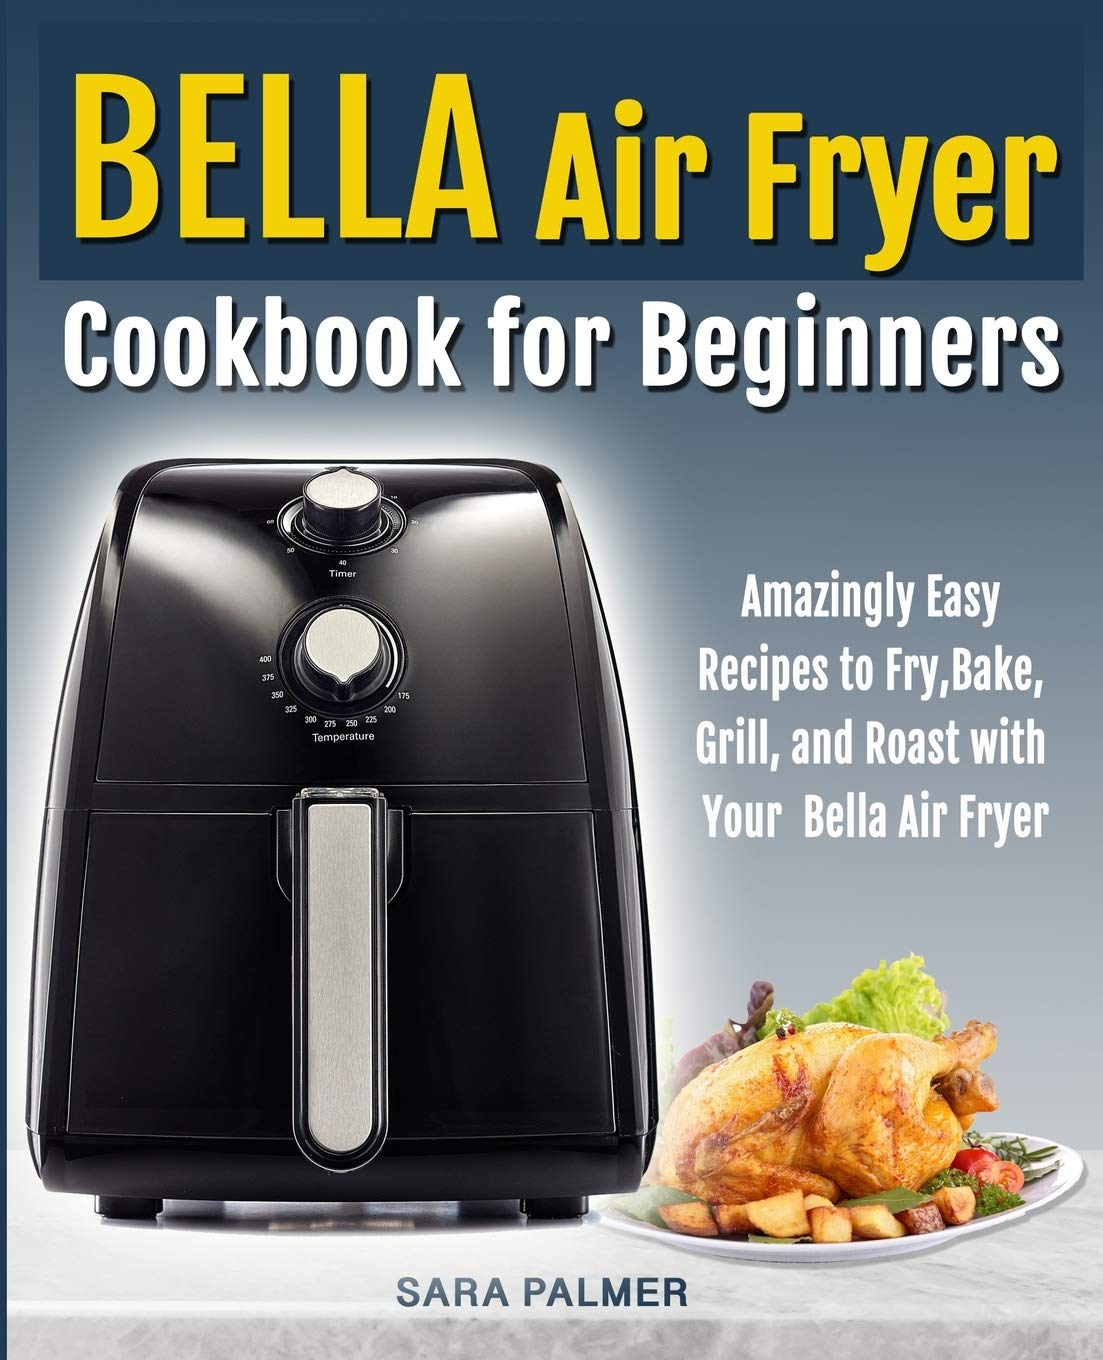 BELLA Air Fryer Cookbook for Beginners: Amazingly Easy Recipes to